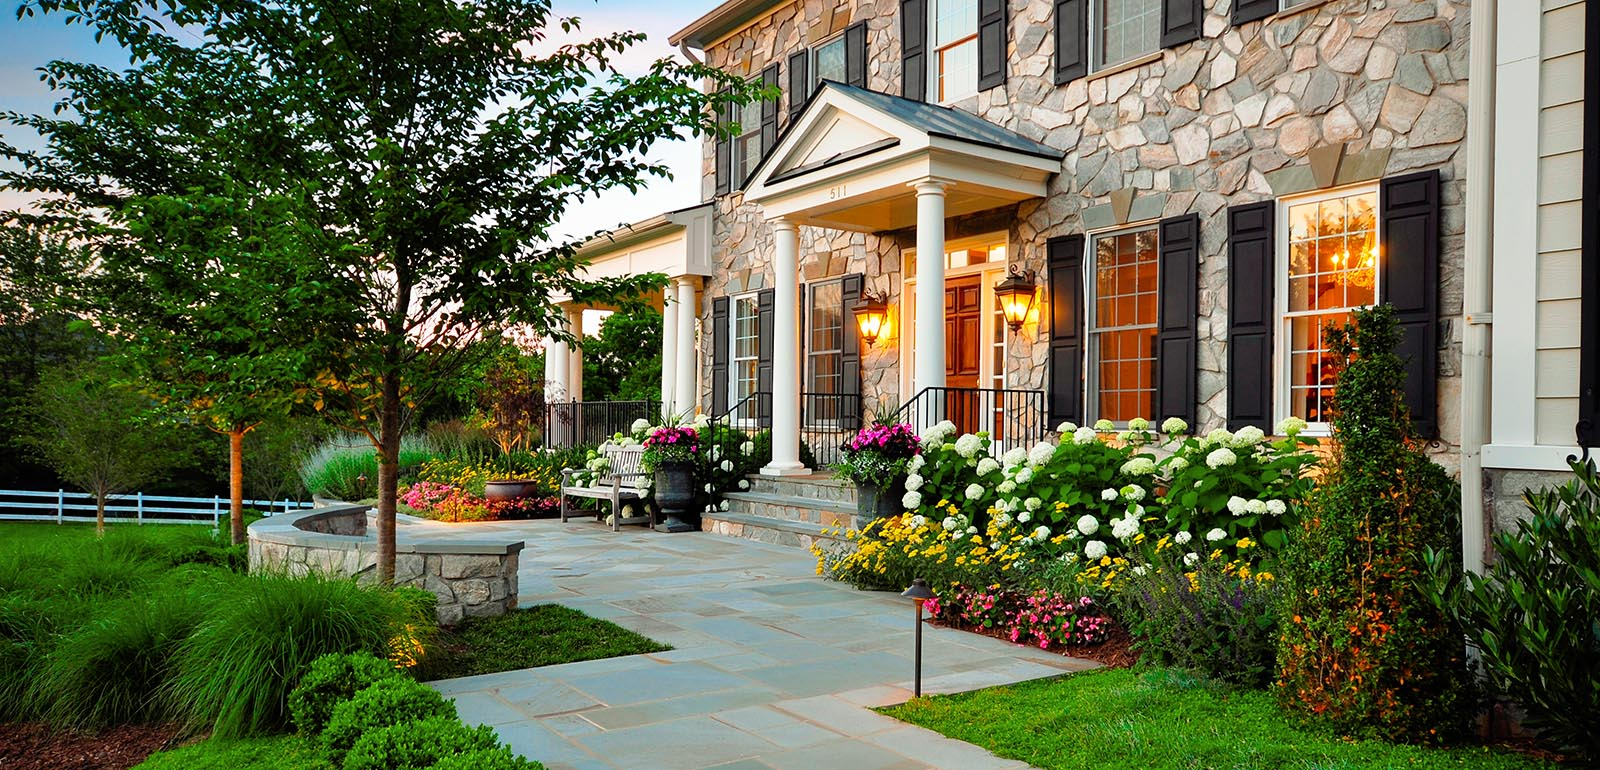 Stone Pathway and Beautiful Flowers Used in Sensational Front Yard Landscaping near Old Fashioned House Entry Area